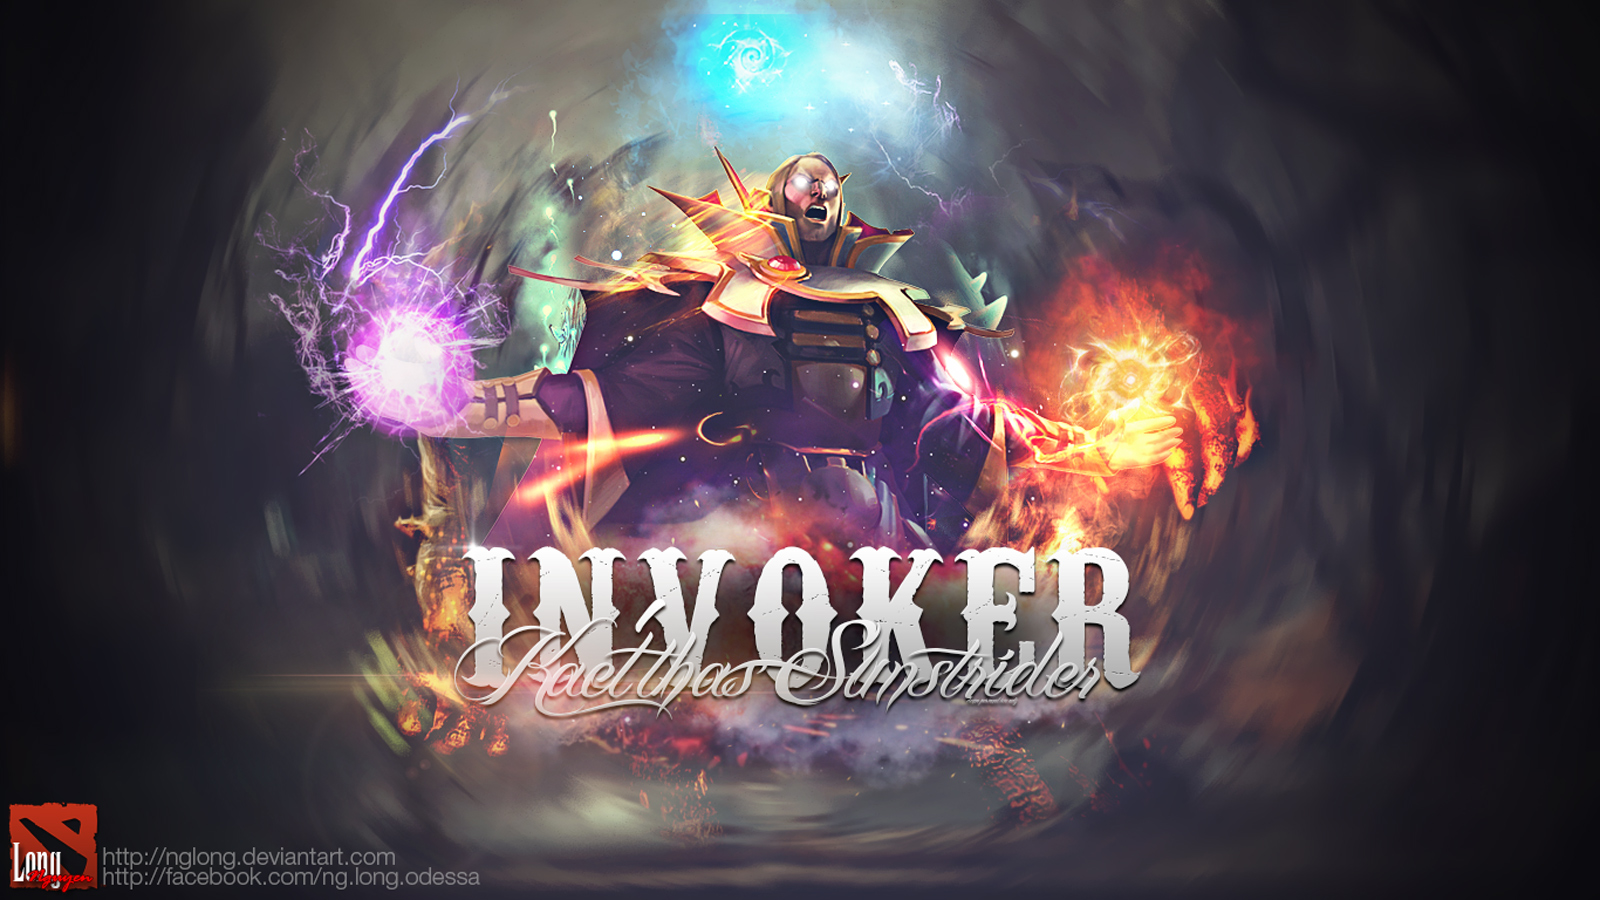 Invoker Dota 2 Wallpaper - WallpaperSafari